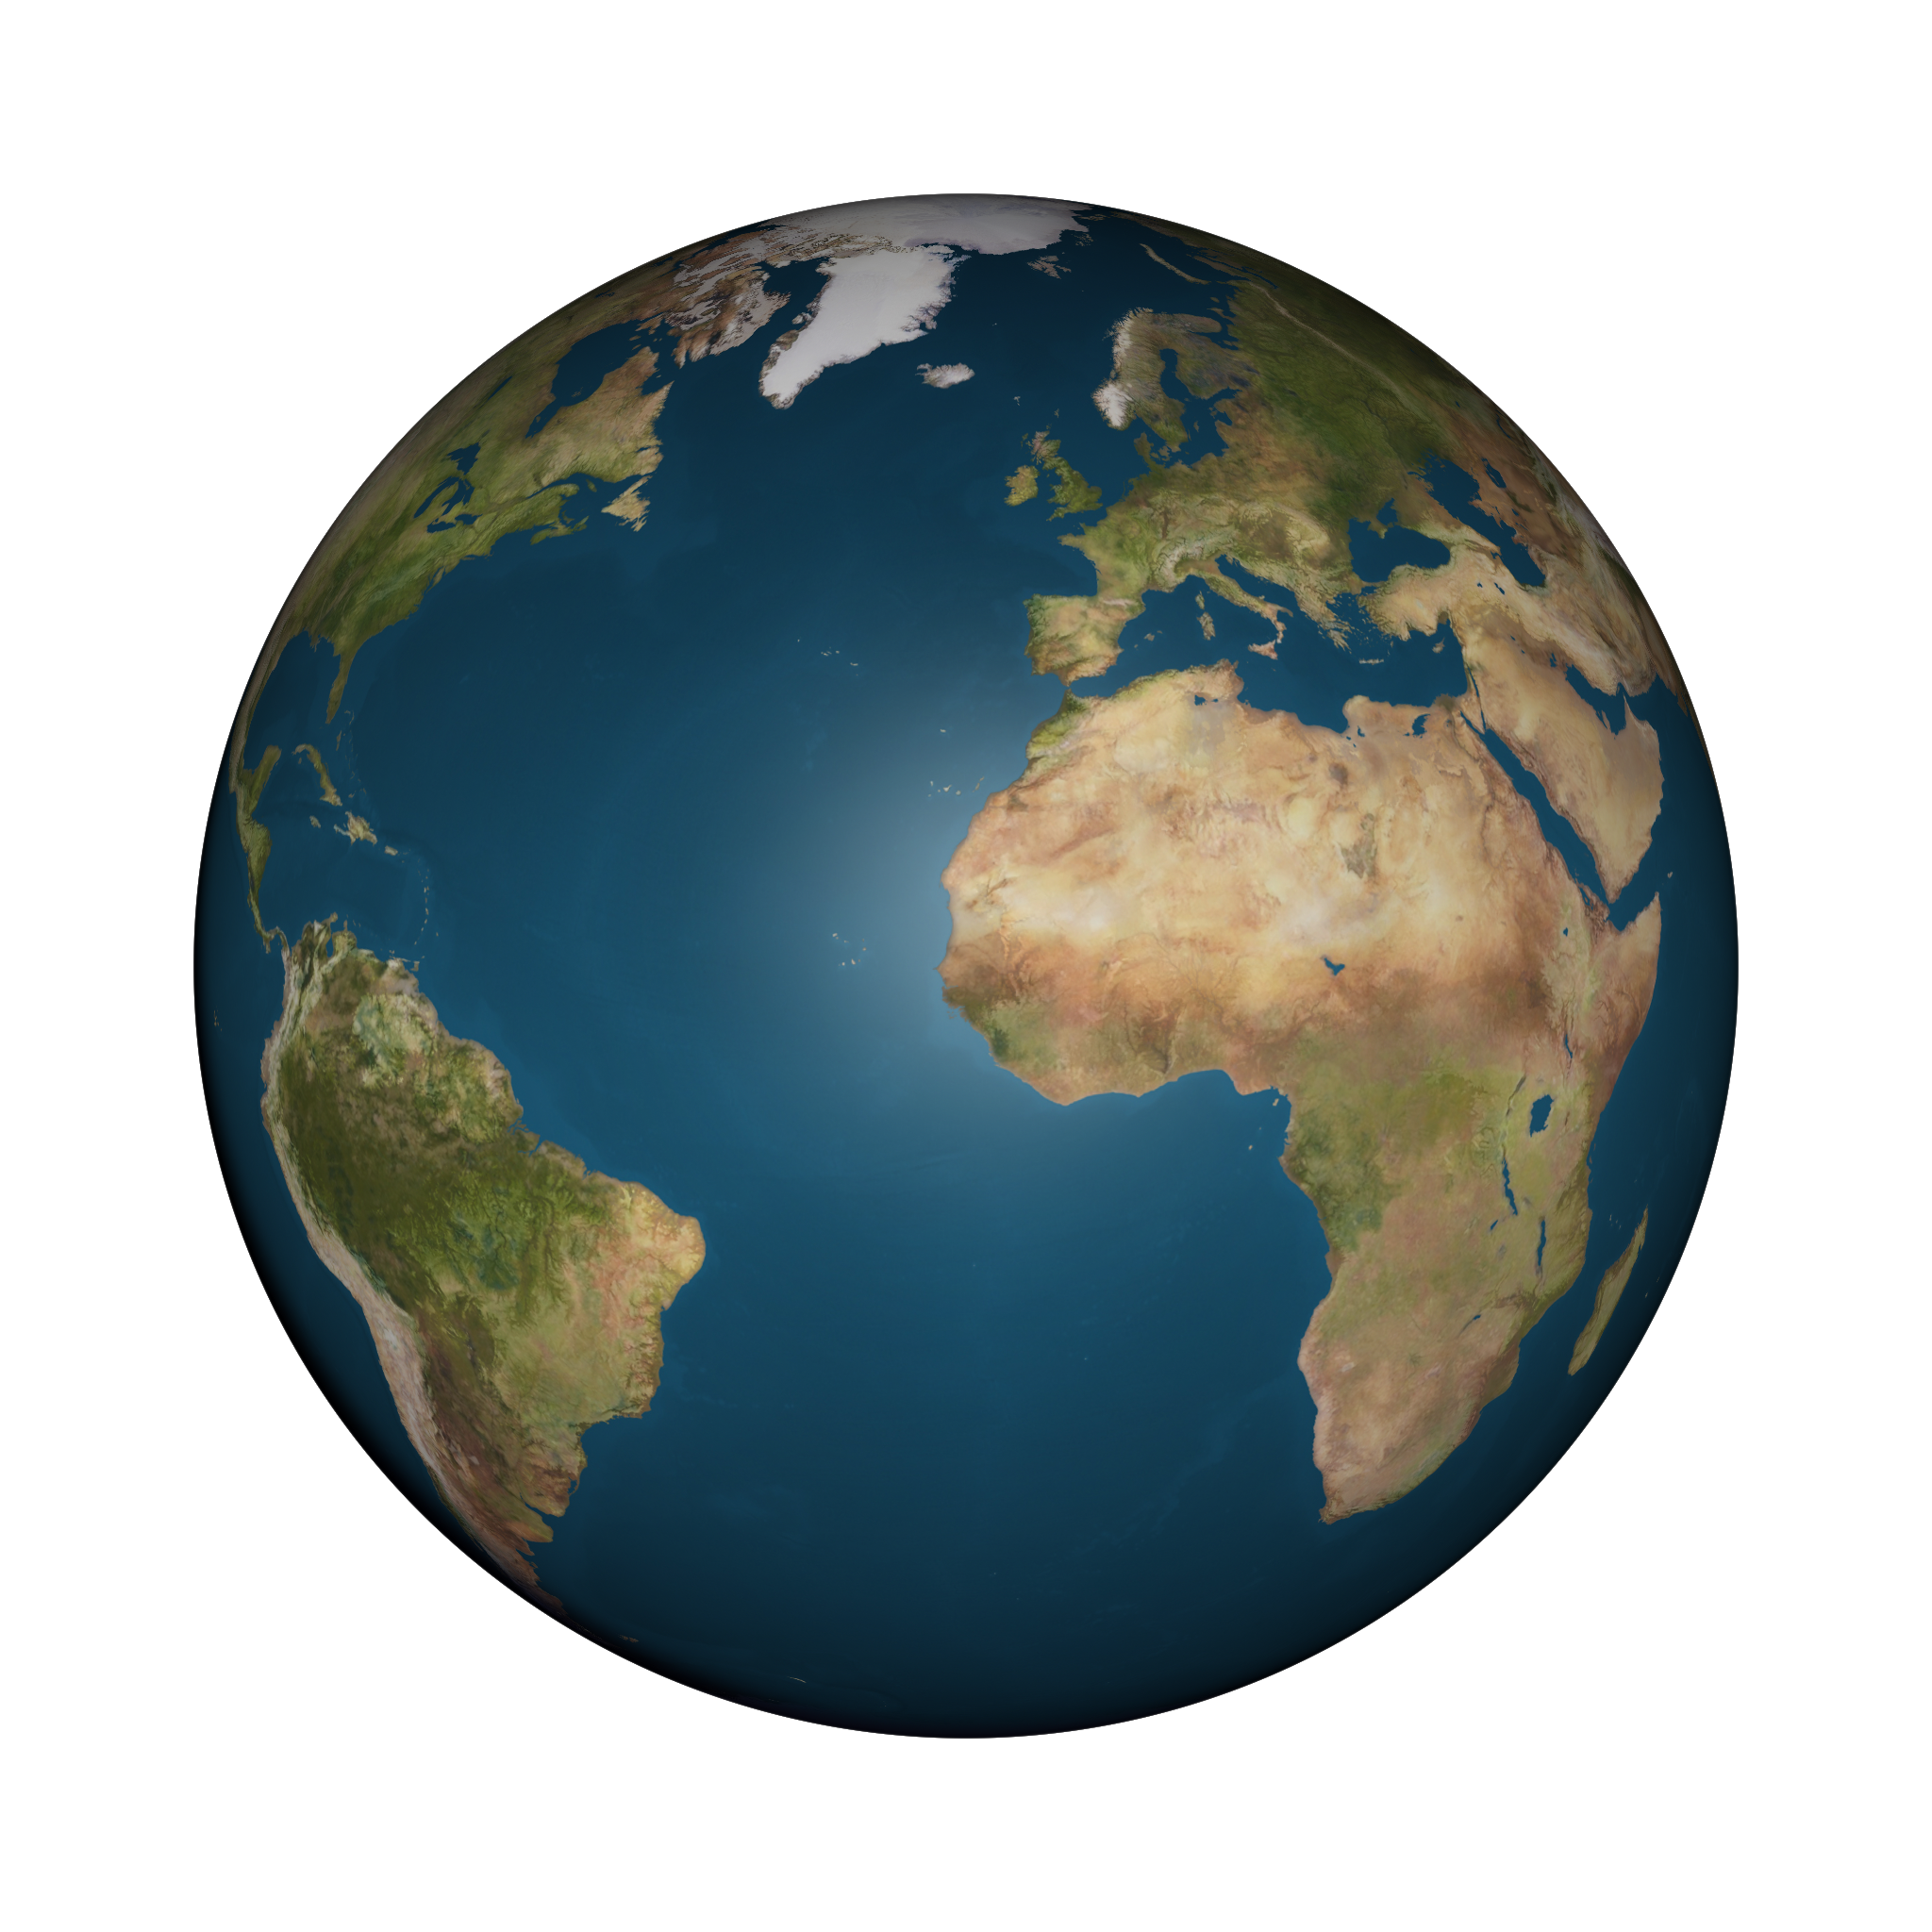 Png image purepng free. Clipart earth high quality